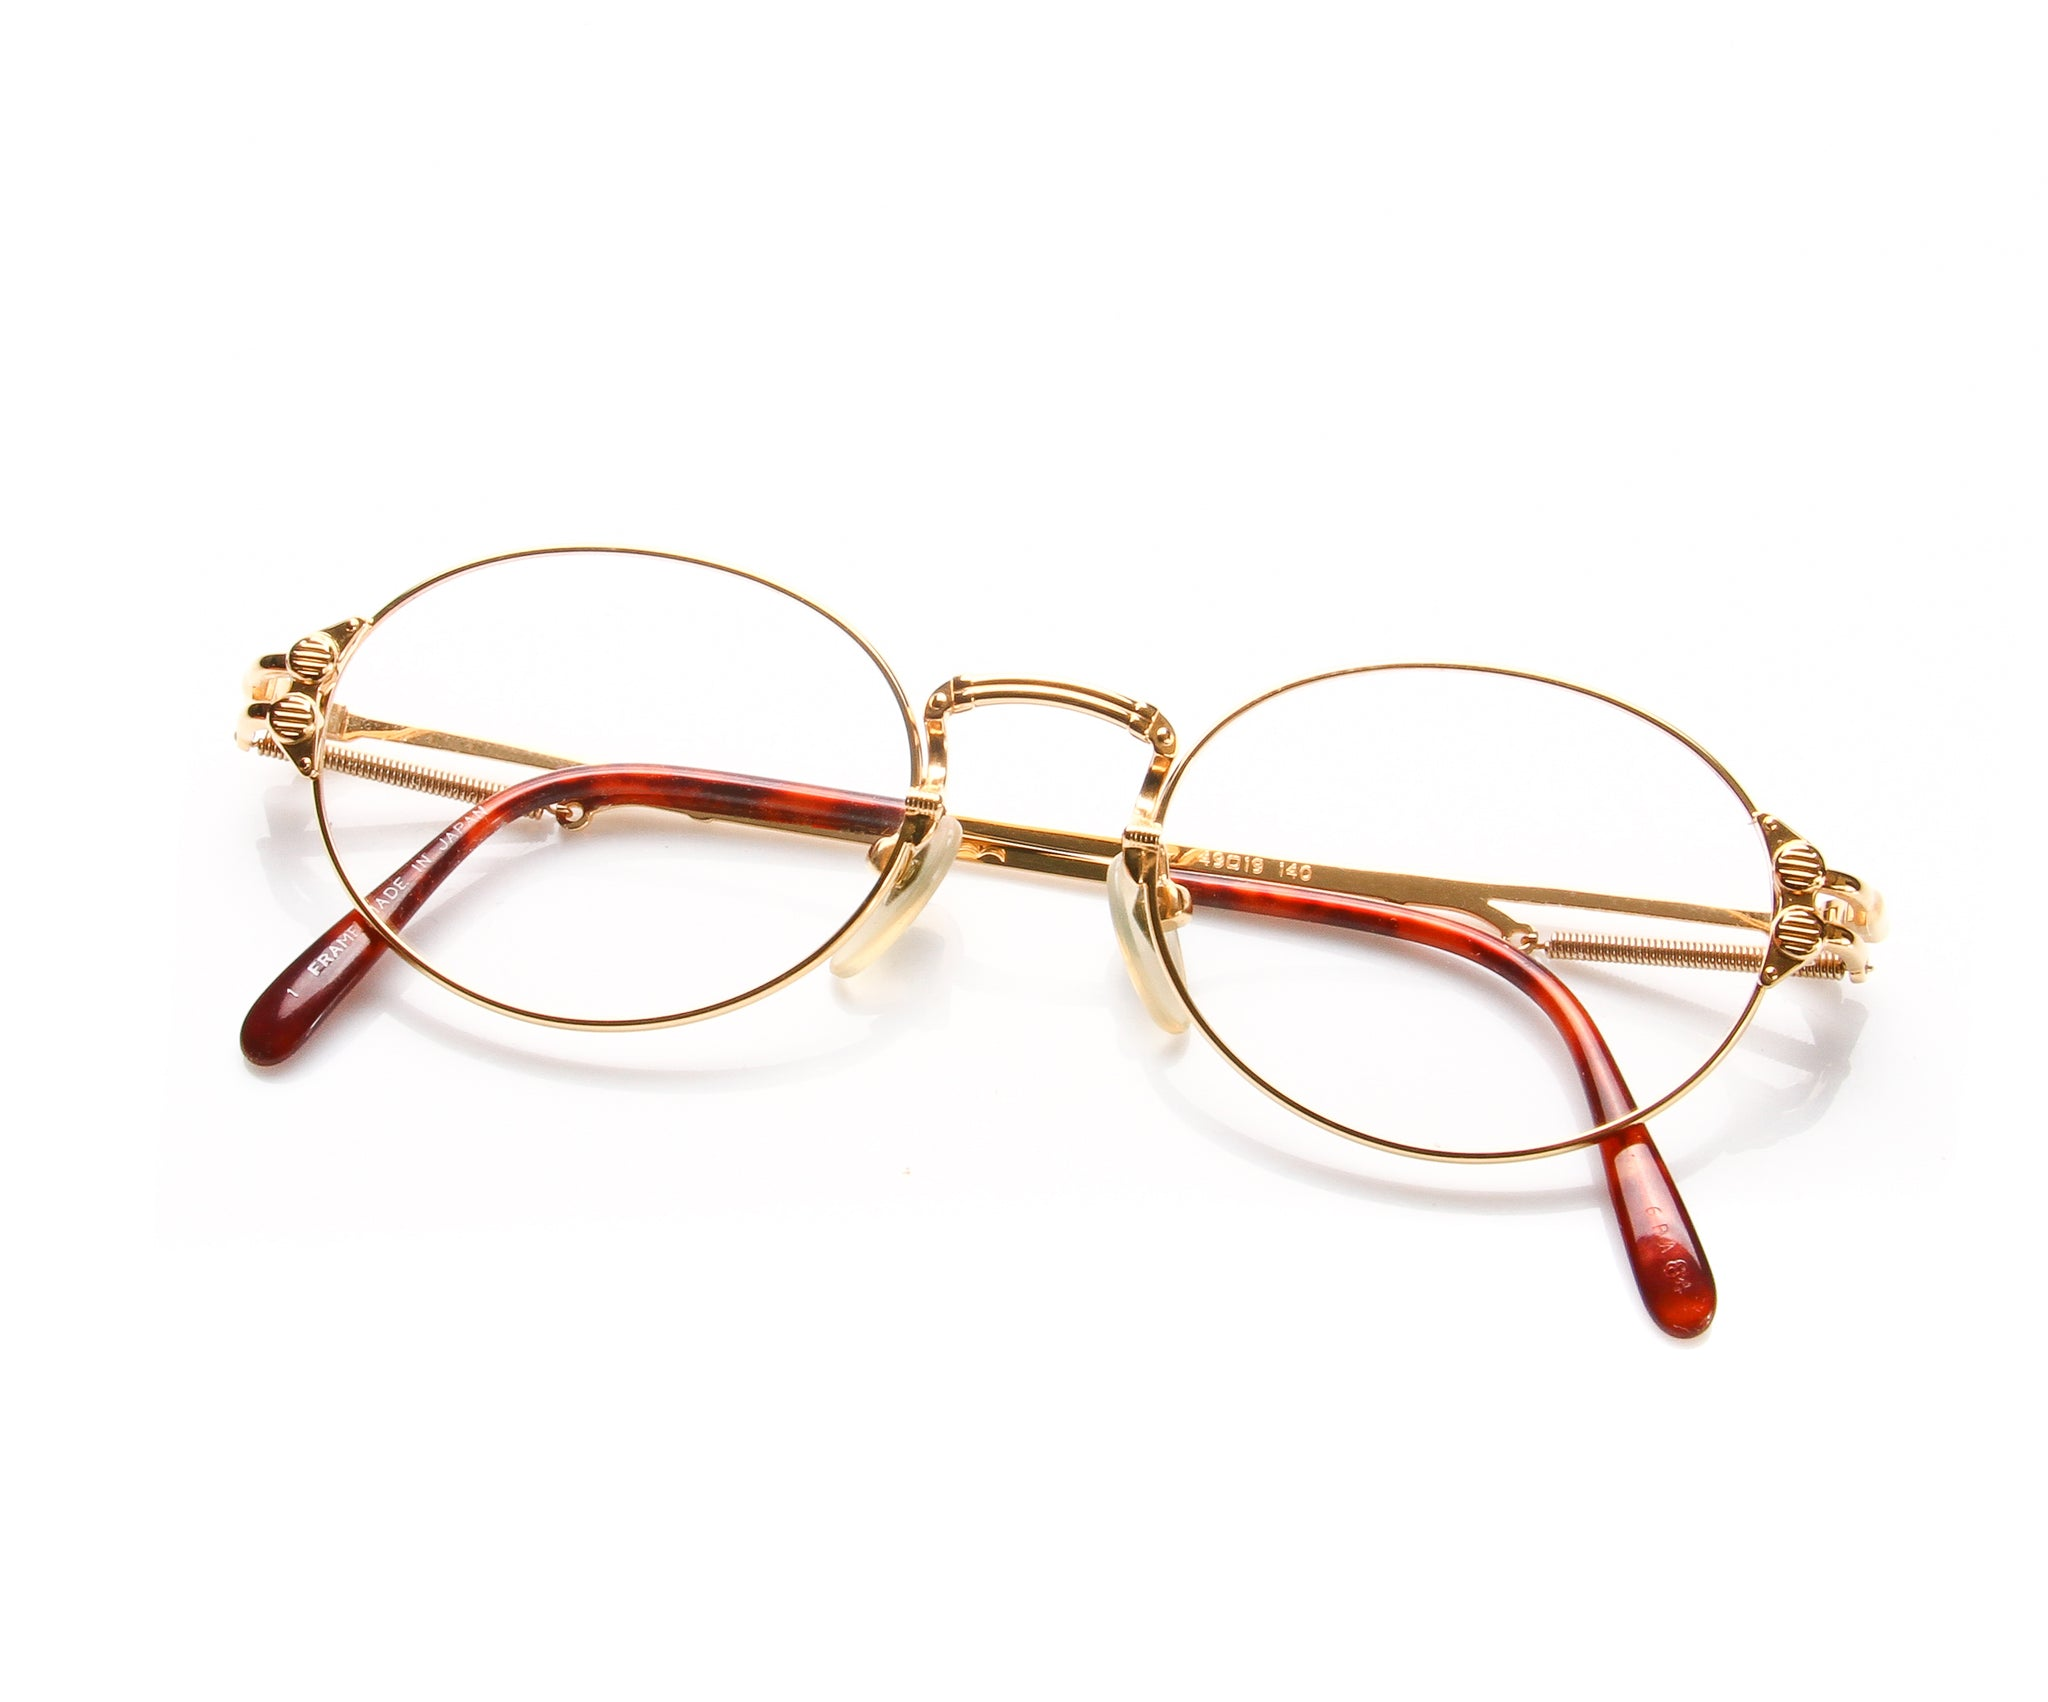 3d9532246 Jean Paul Gaultier 55 4173 1 Gold Plated – Vintage Frames Company